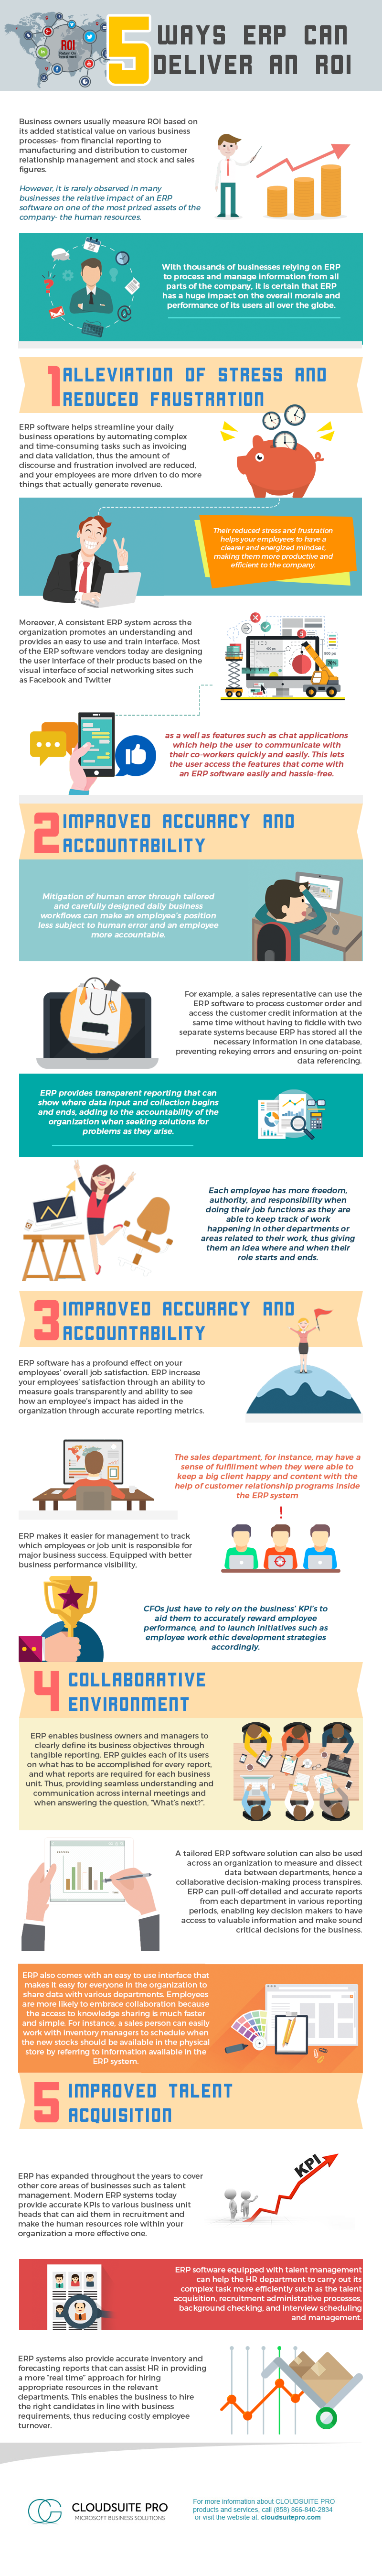 5-ways-erp-can-deliver-roi